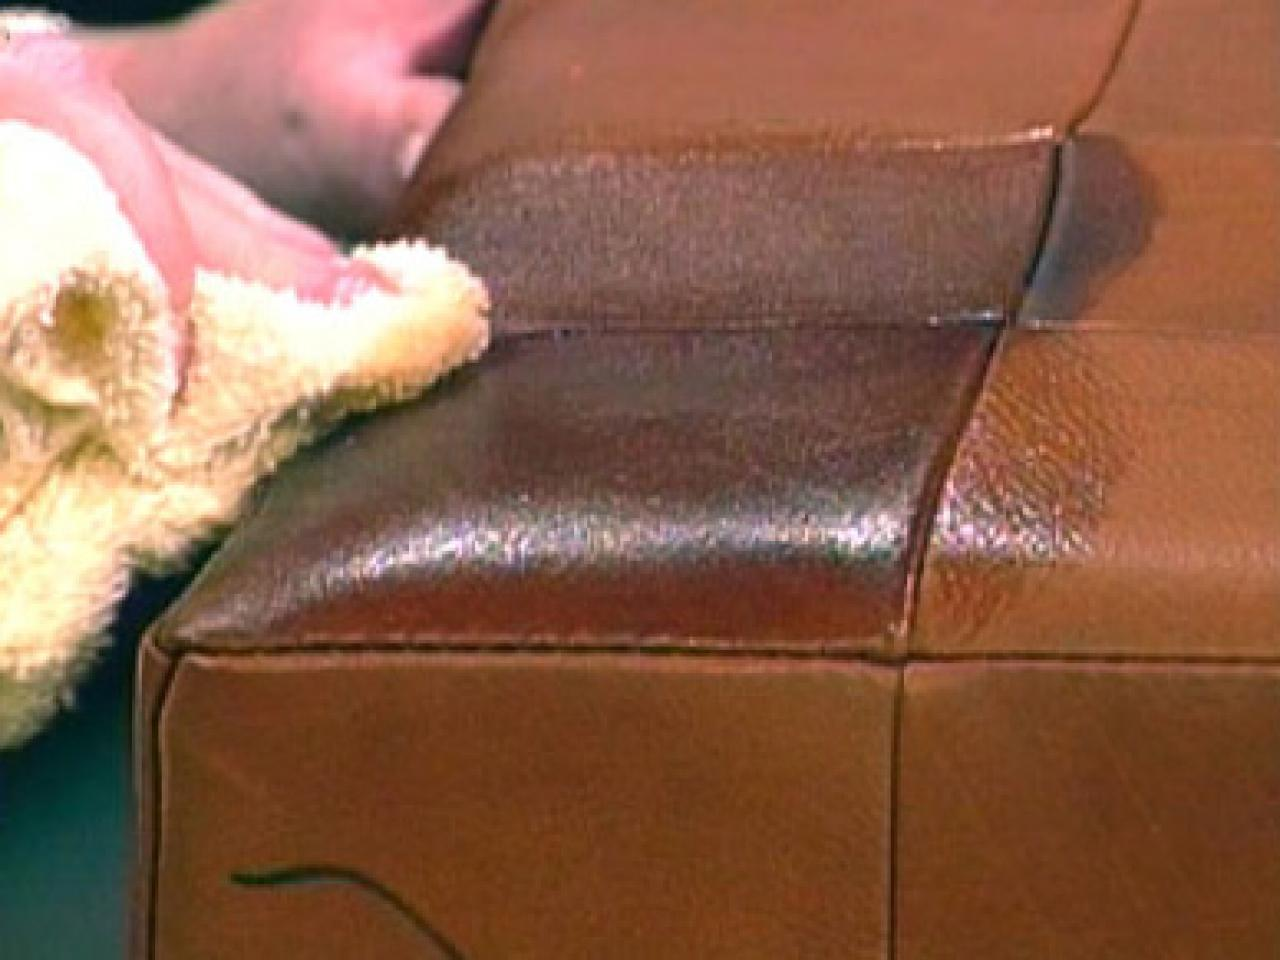 How To Remove Cooking Oil From Leather Bag